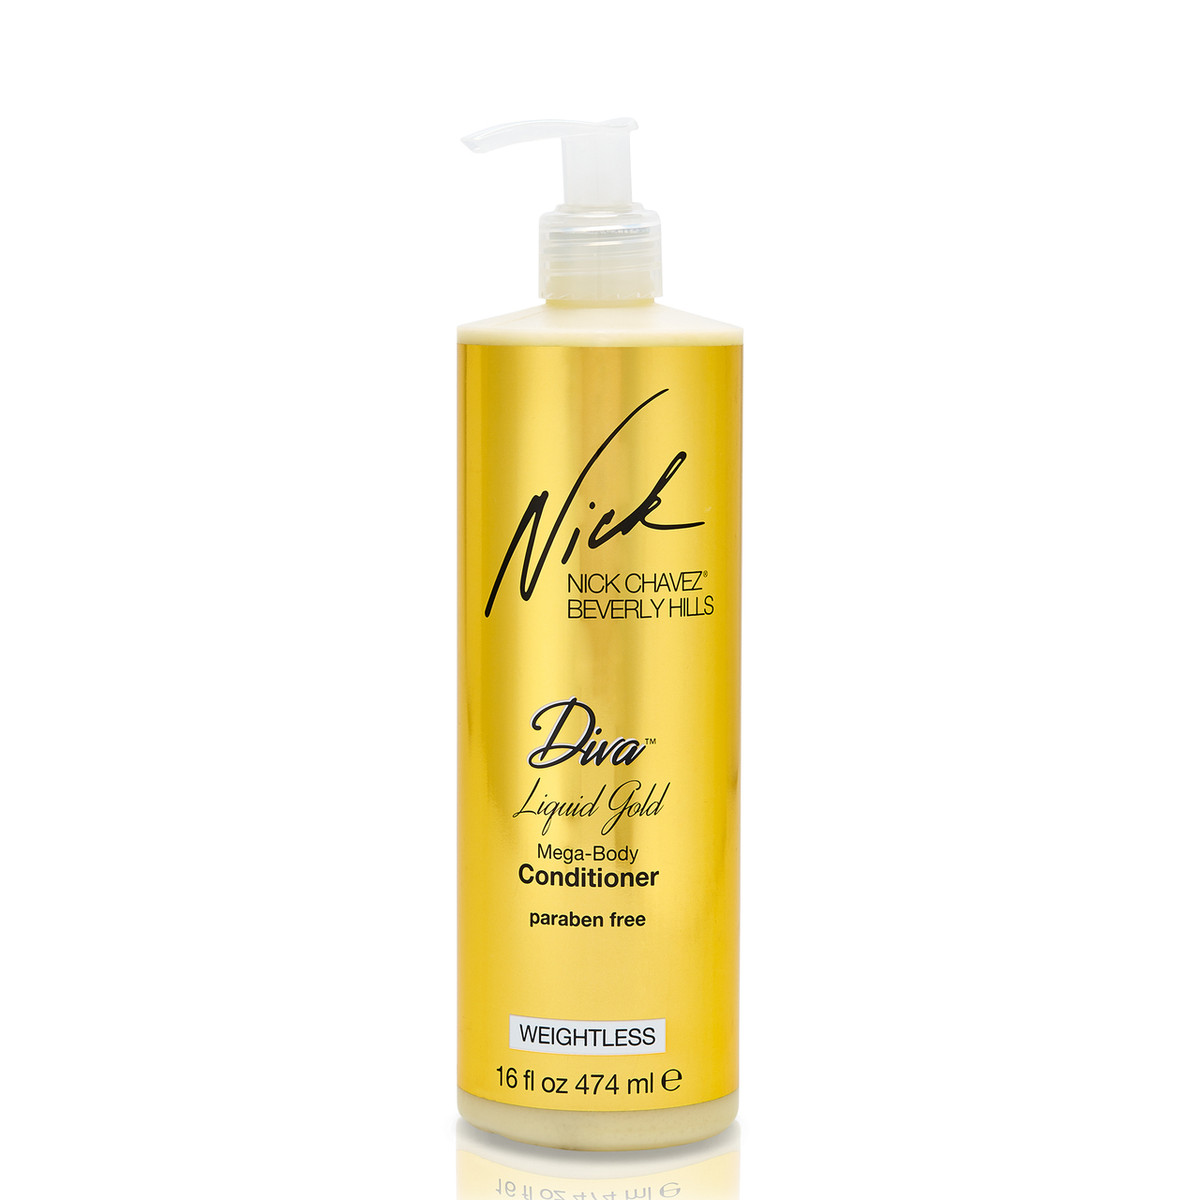 Diva Liquid Gold Mega-Body Conditioner 16oz